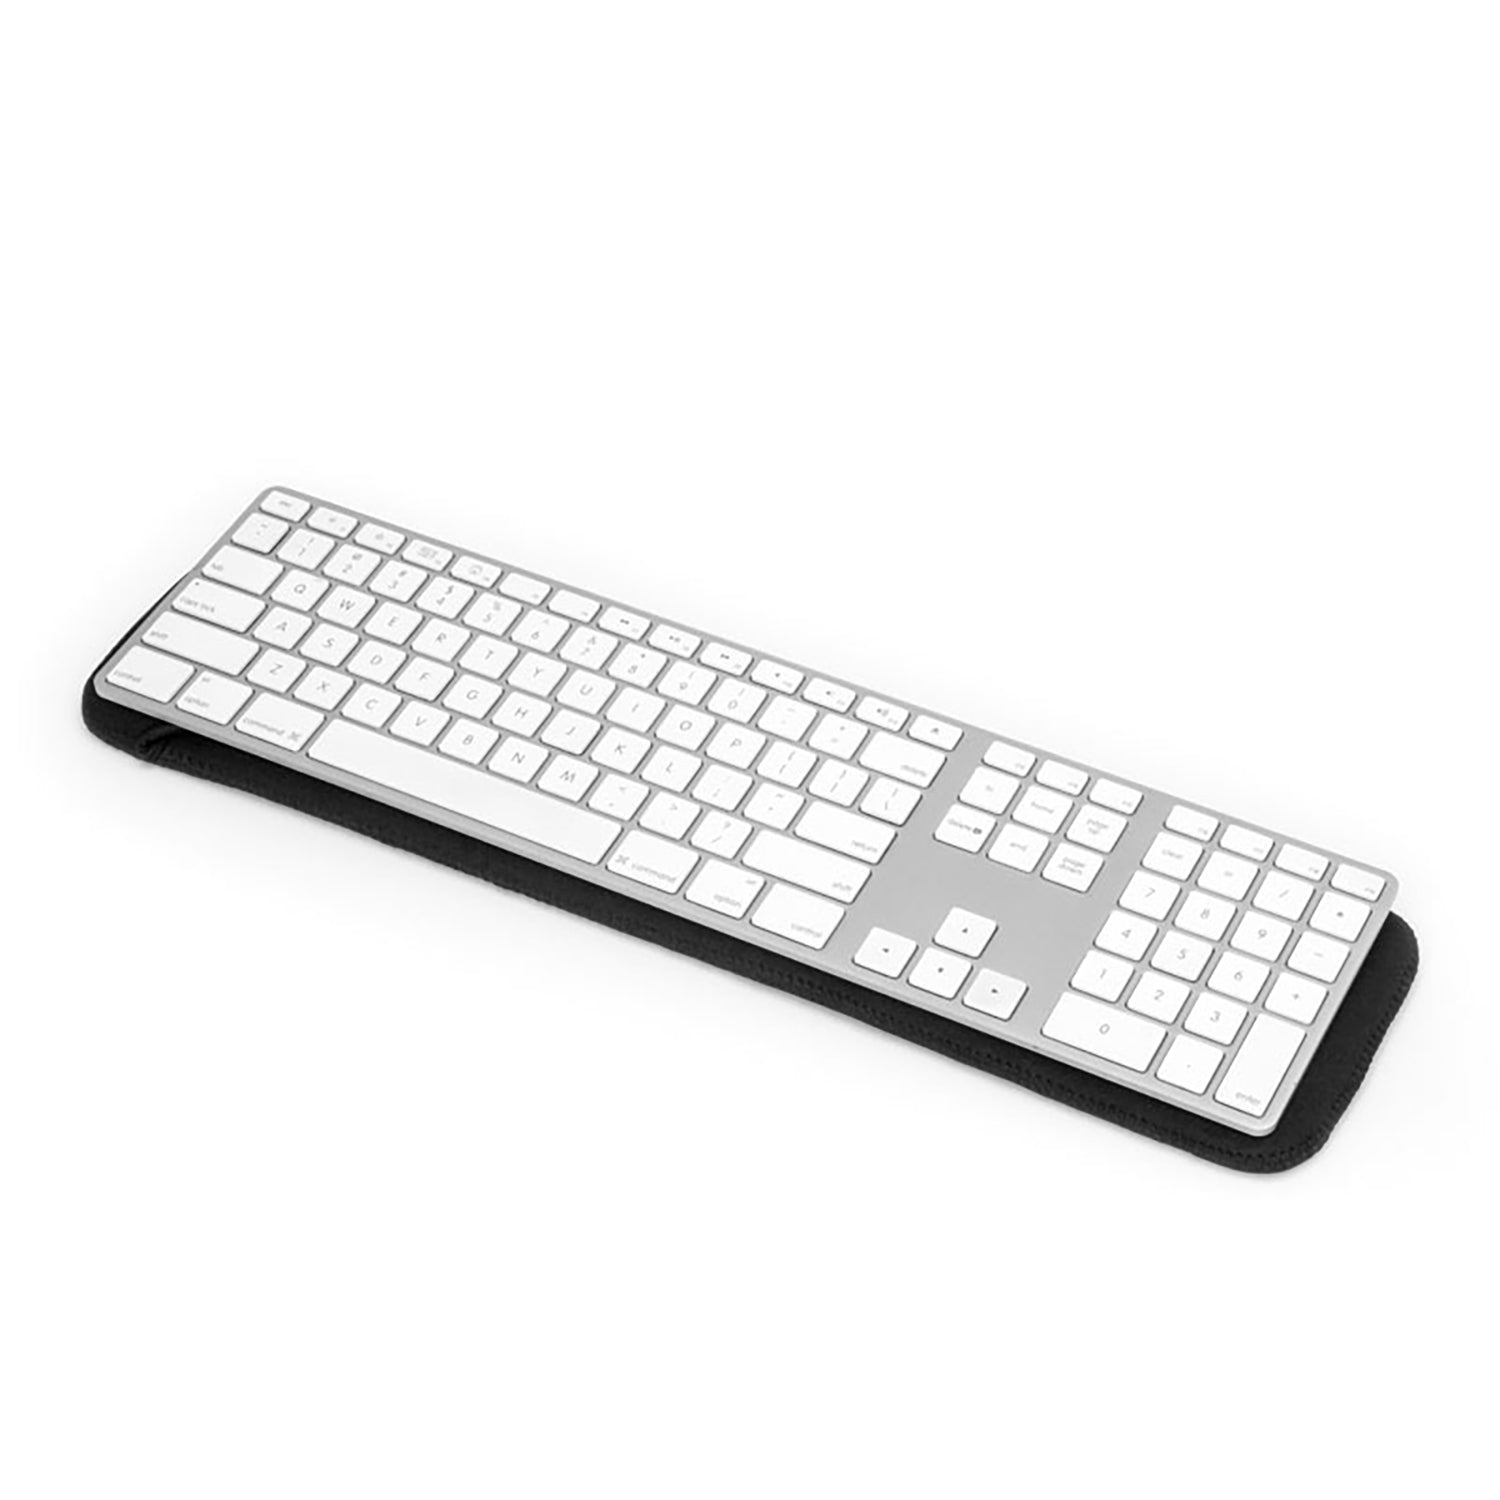 Grifiti Chiton Slim 17 Slim Keyboard Sleeve for Apple Logitech Steel Series - Grifiti